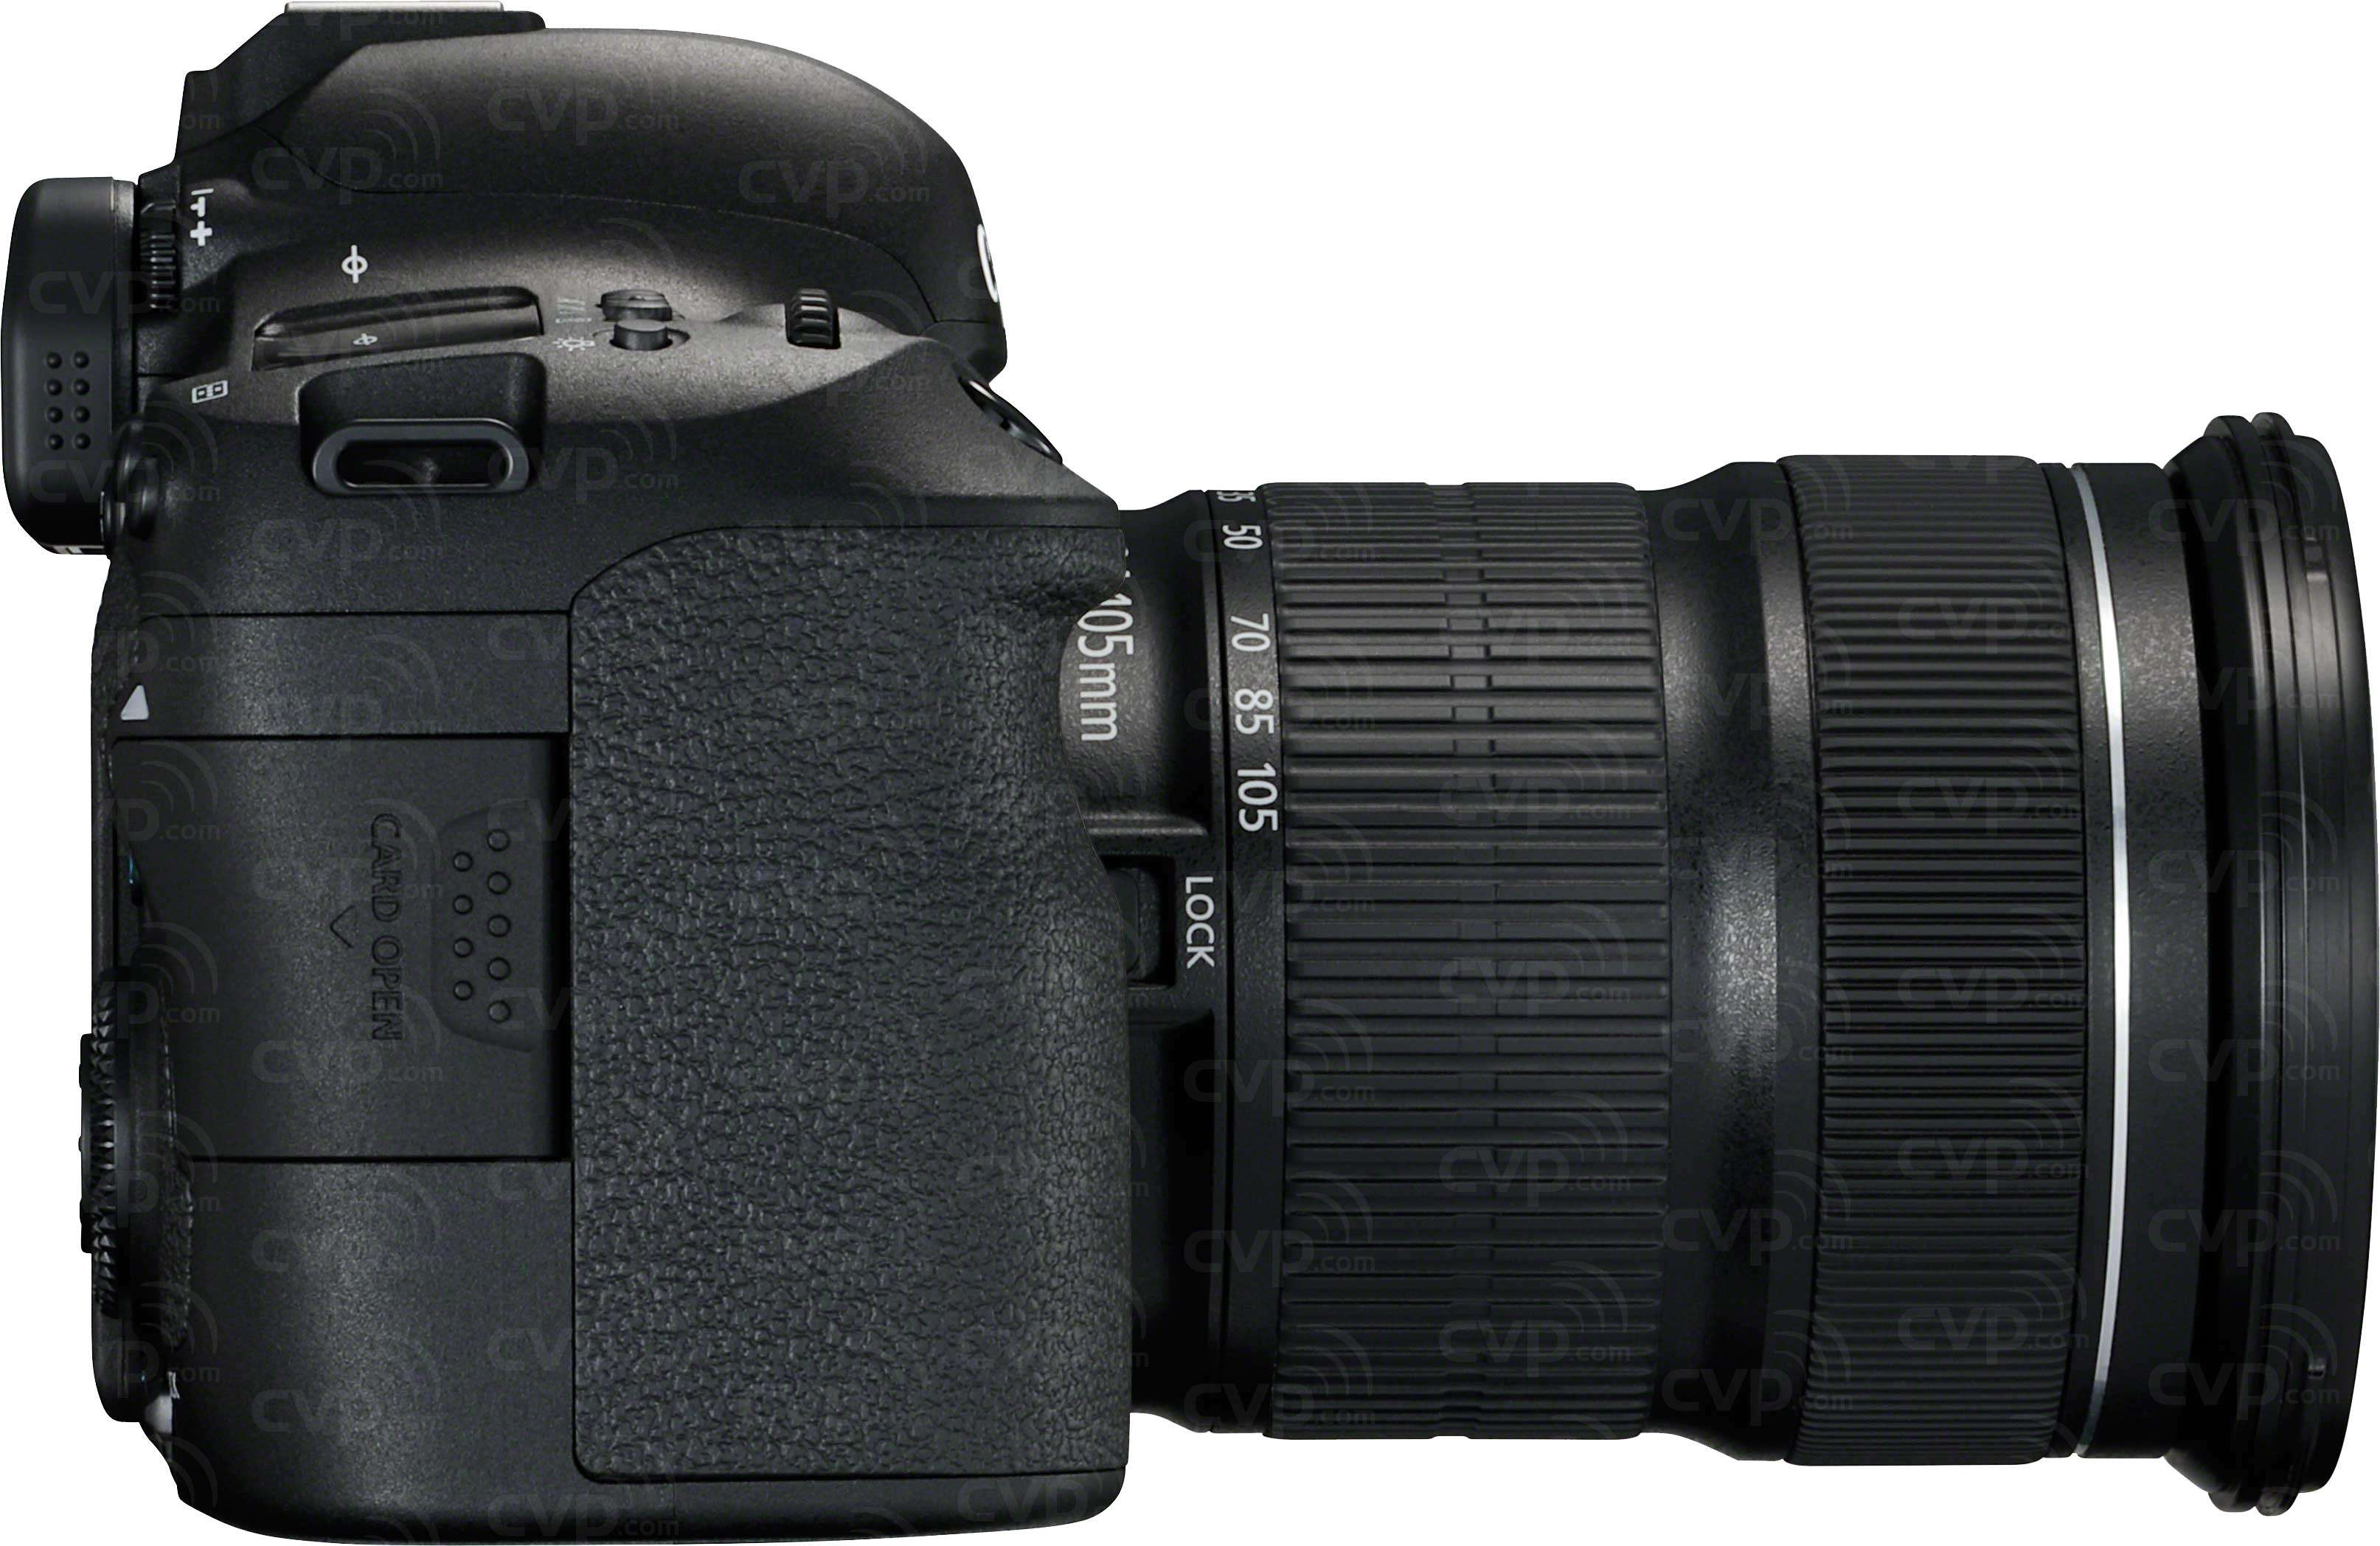 Canon 6D MkII + 24-105mm Lens